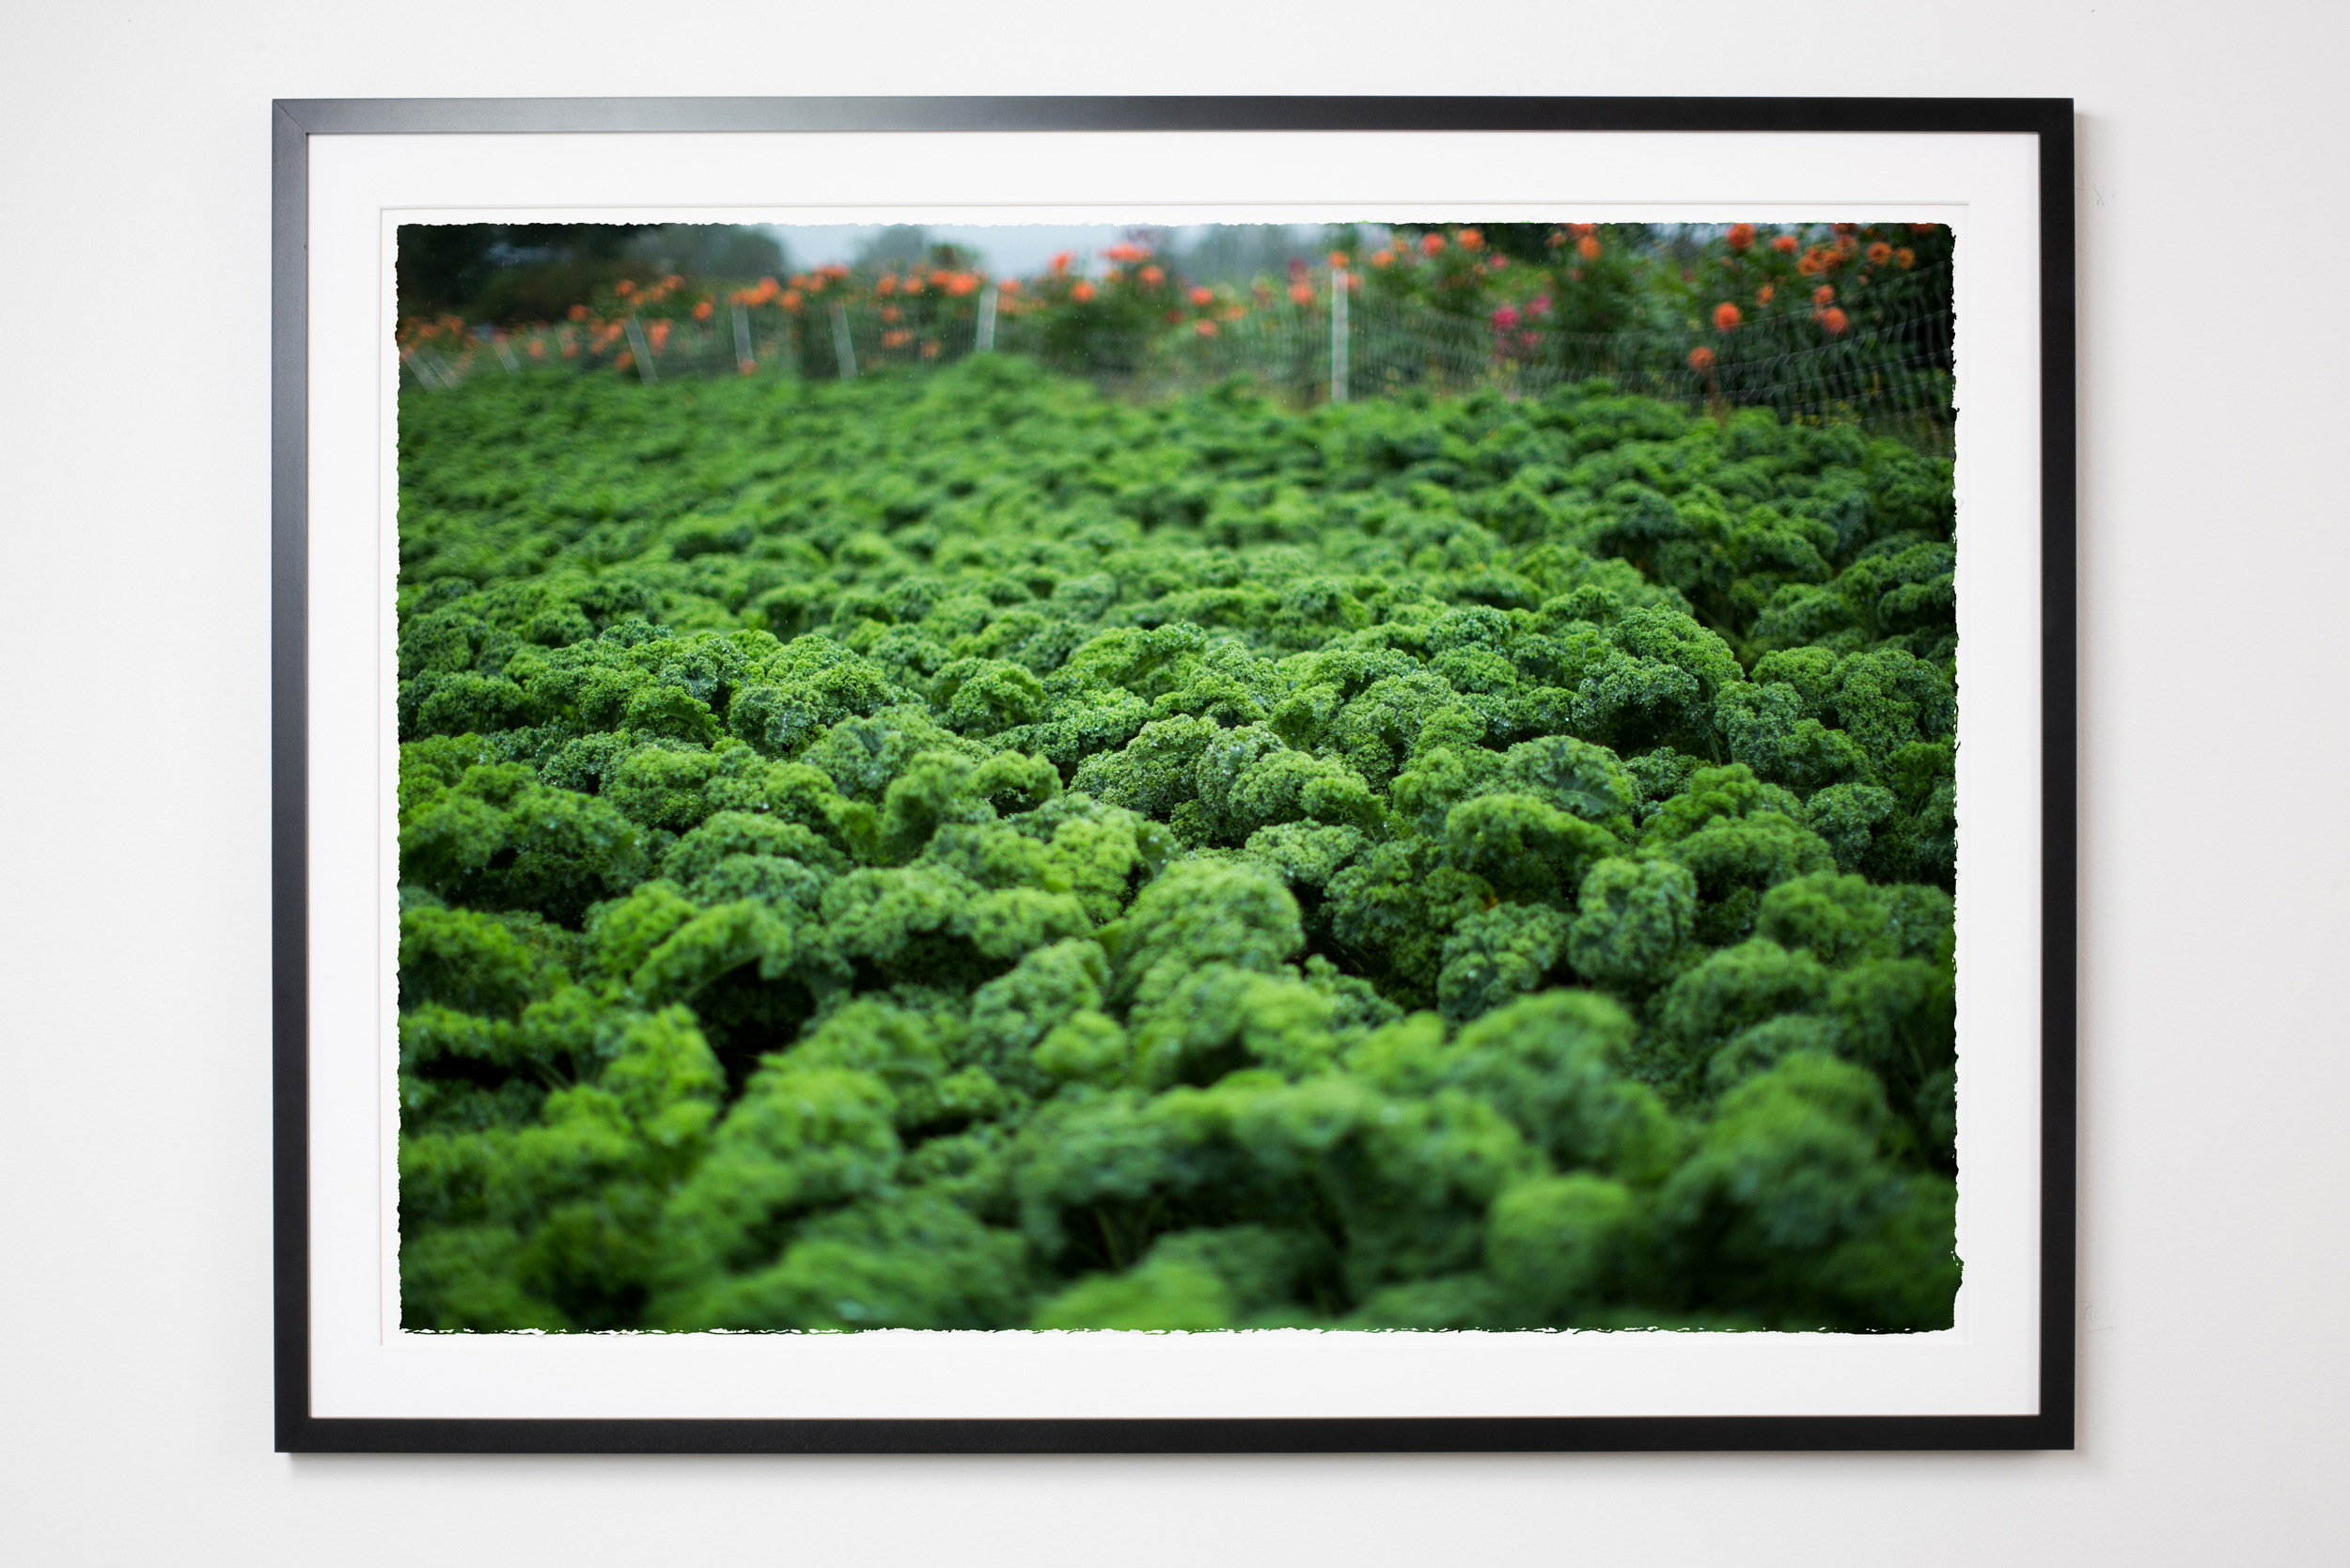 589Molly M Peterson Framed Print Heartwork HudsonValley.jpg